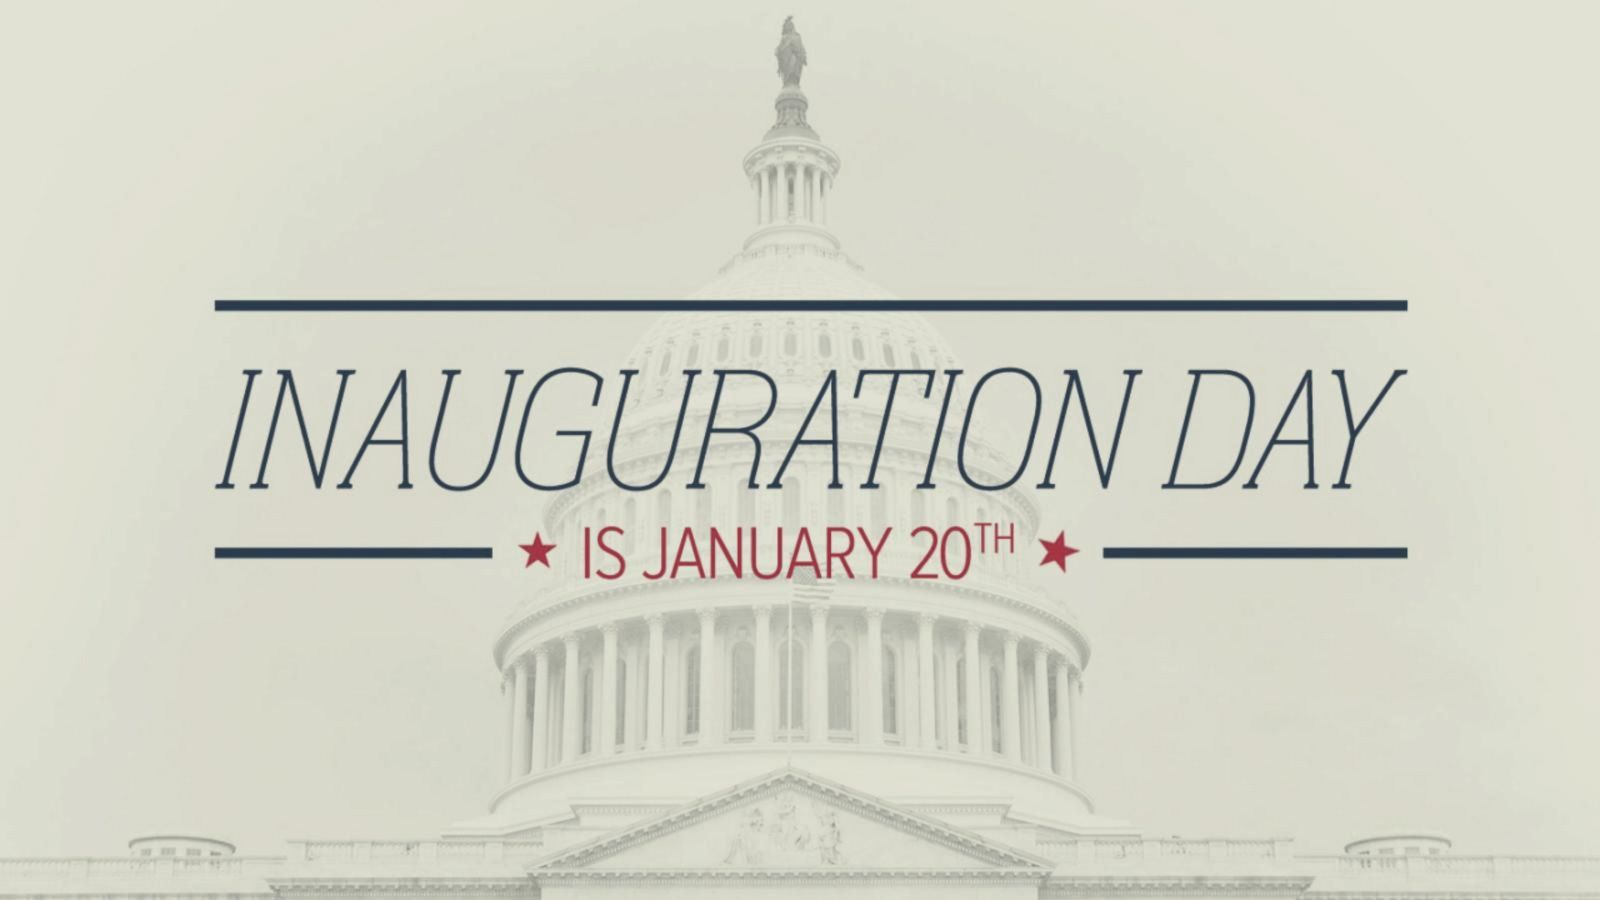 VIDEO: What You Should Know About Inauguration Day